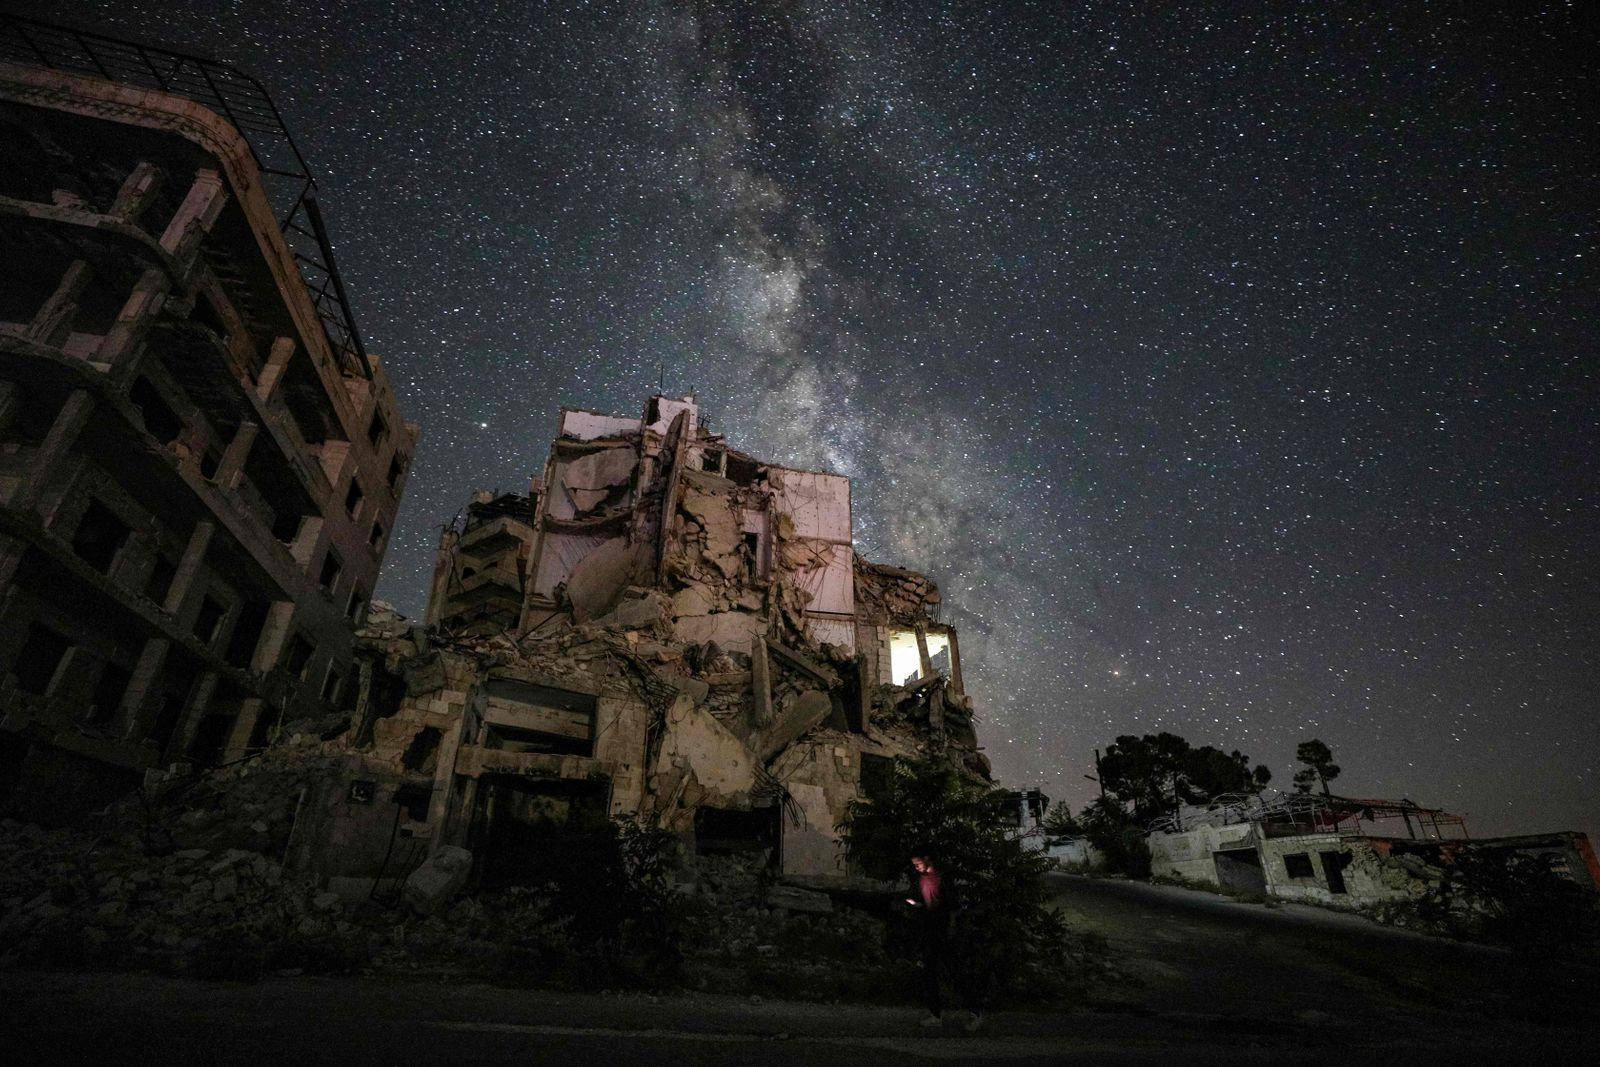 TOPSHOT-SYRIA-CONFLICT-ASTRONOMY